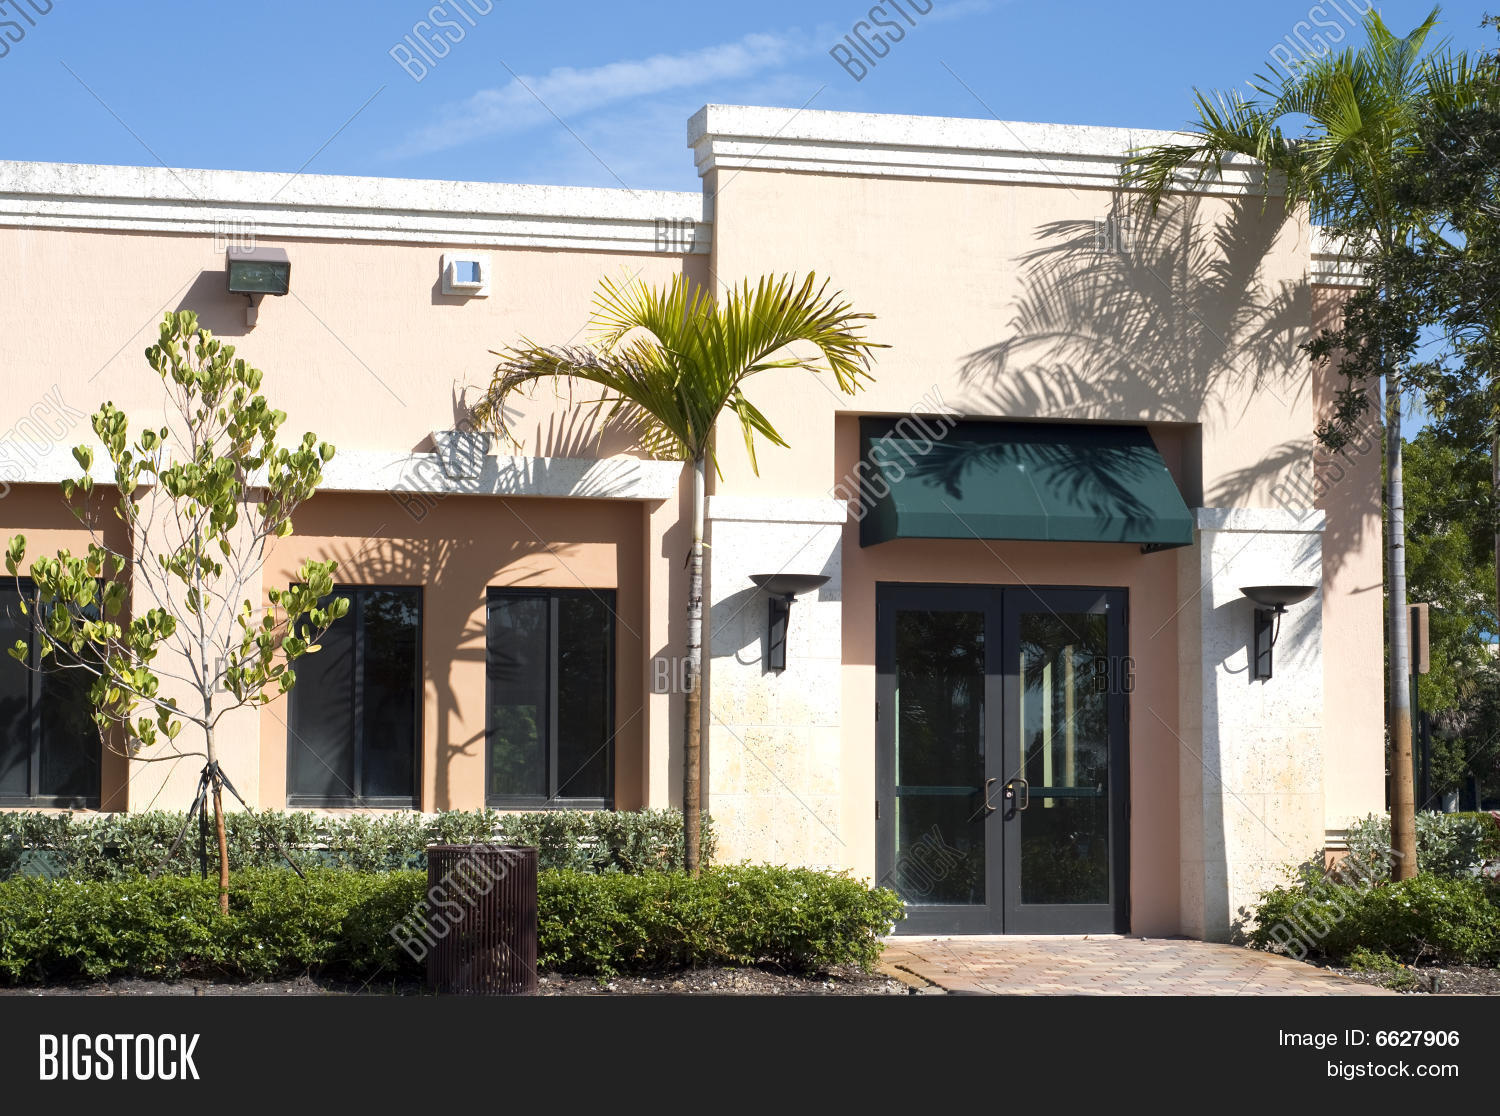 Modern Office Building Image Photo Free Trial Bigstock